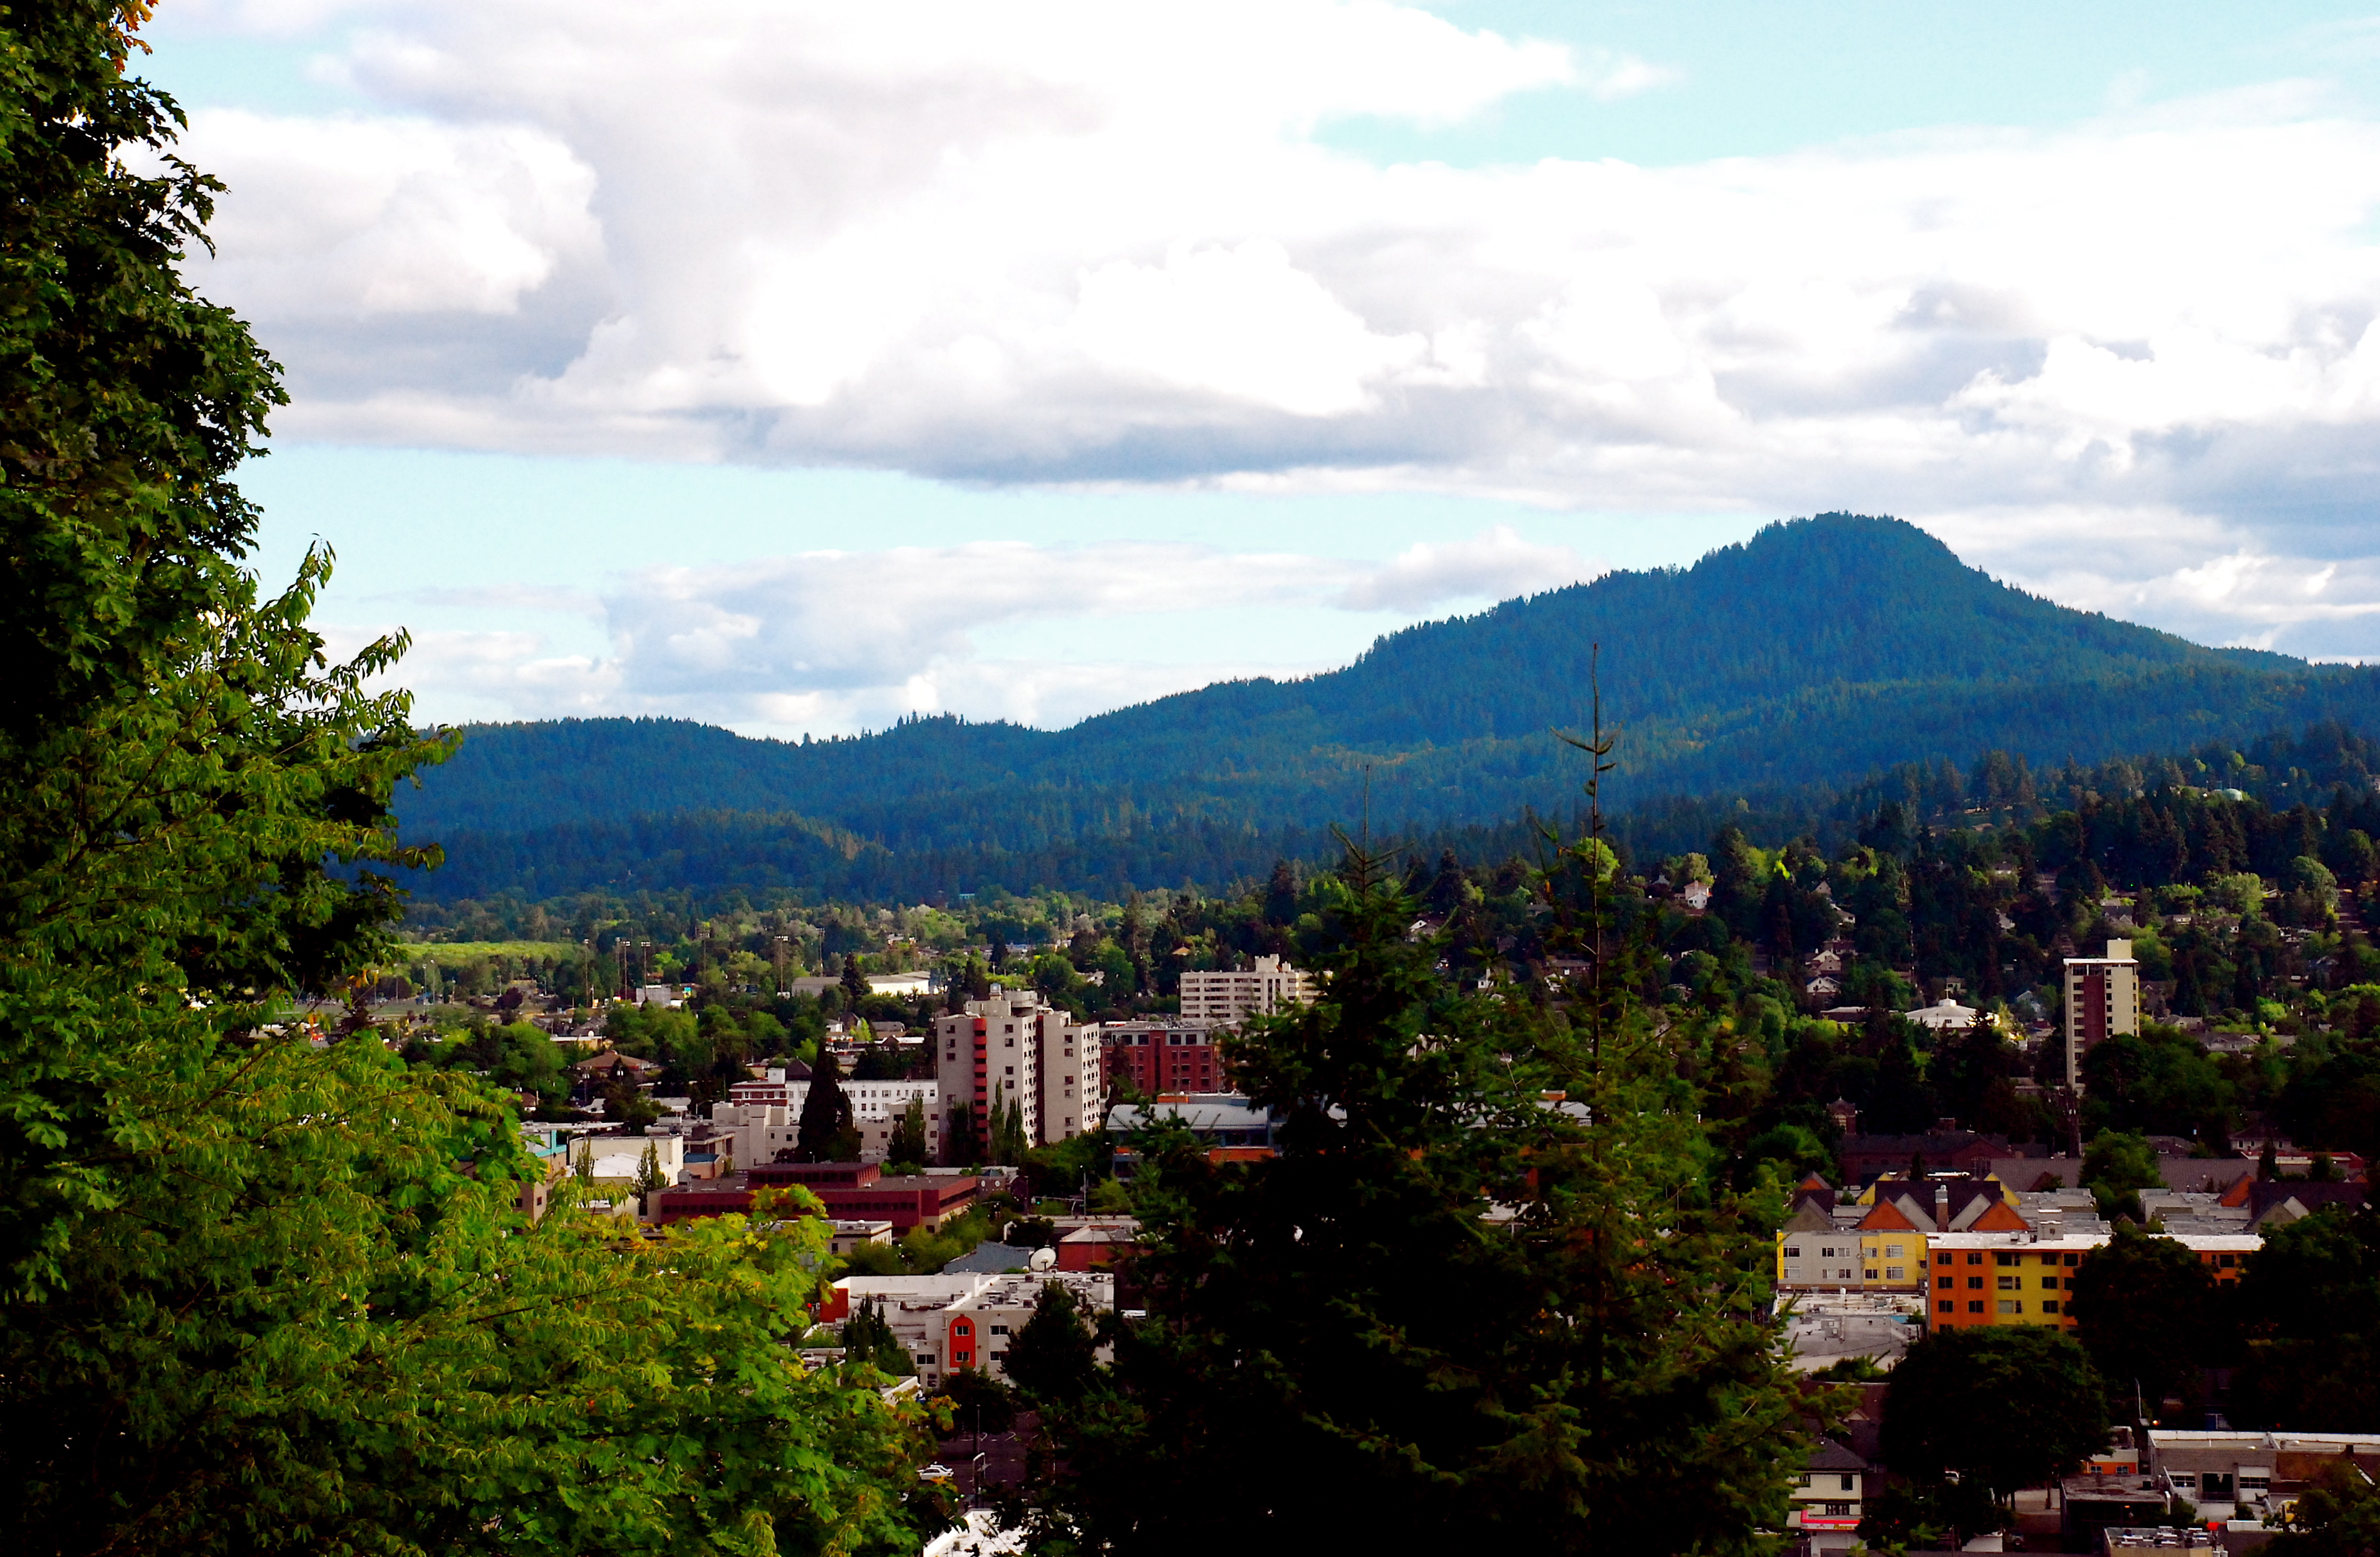 File:Eugene and Spencer Butte jpg - Wikimedia Commons